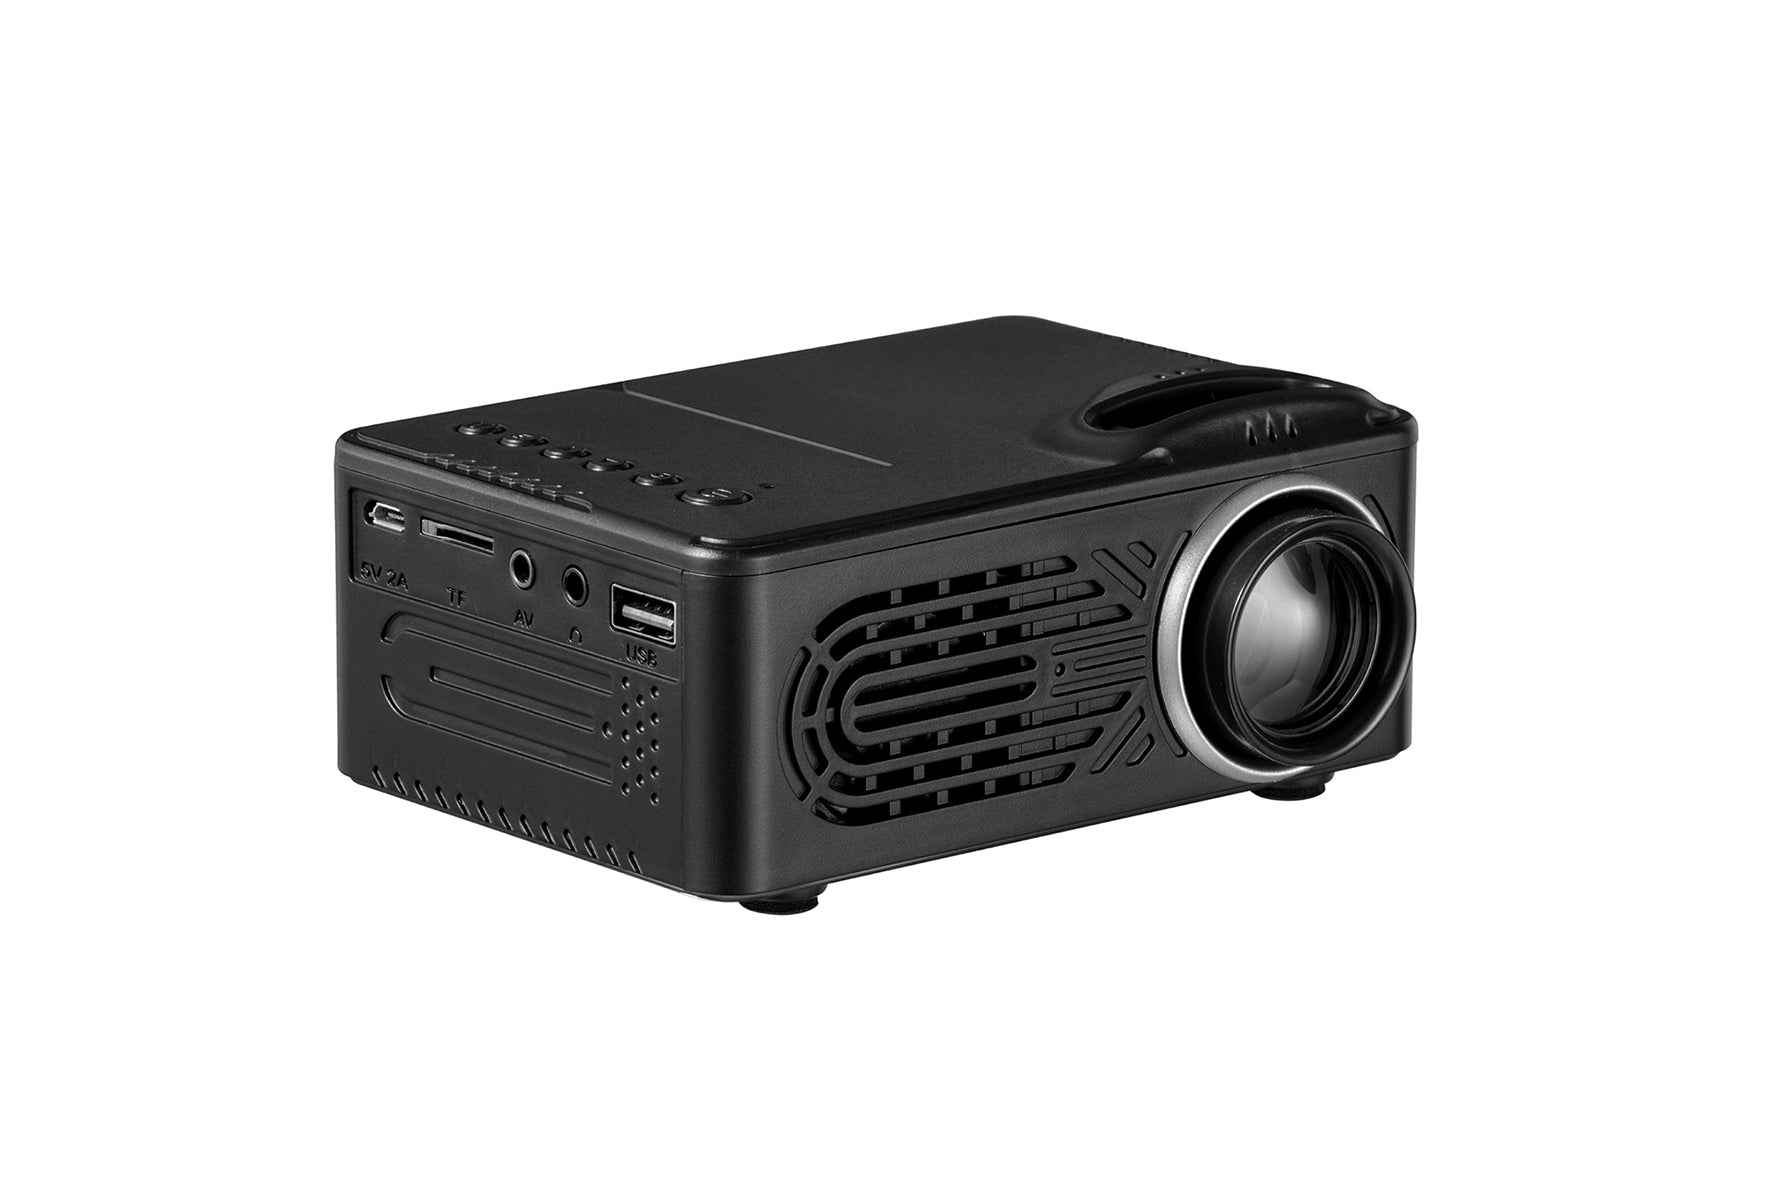 Carryvalue 814 LCD Mini Projector